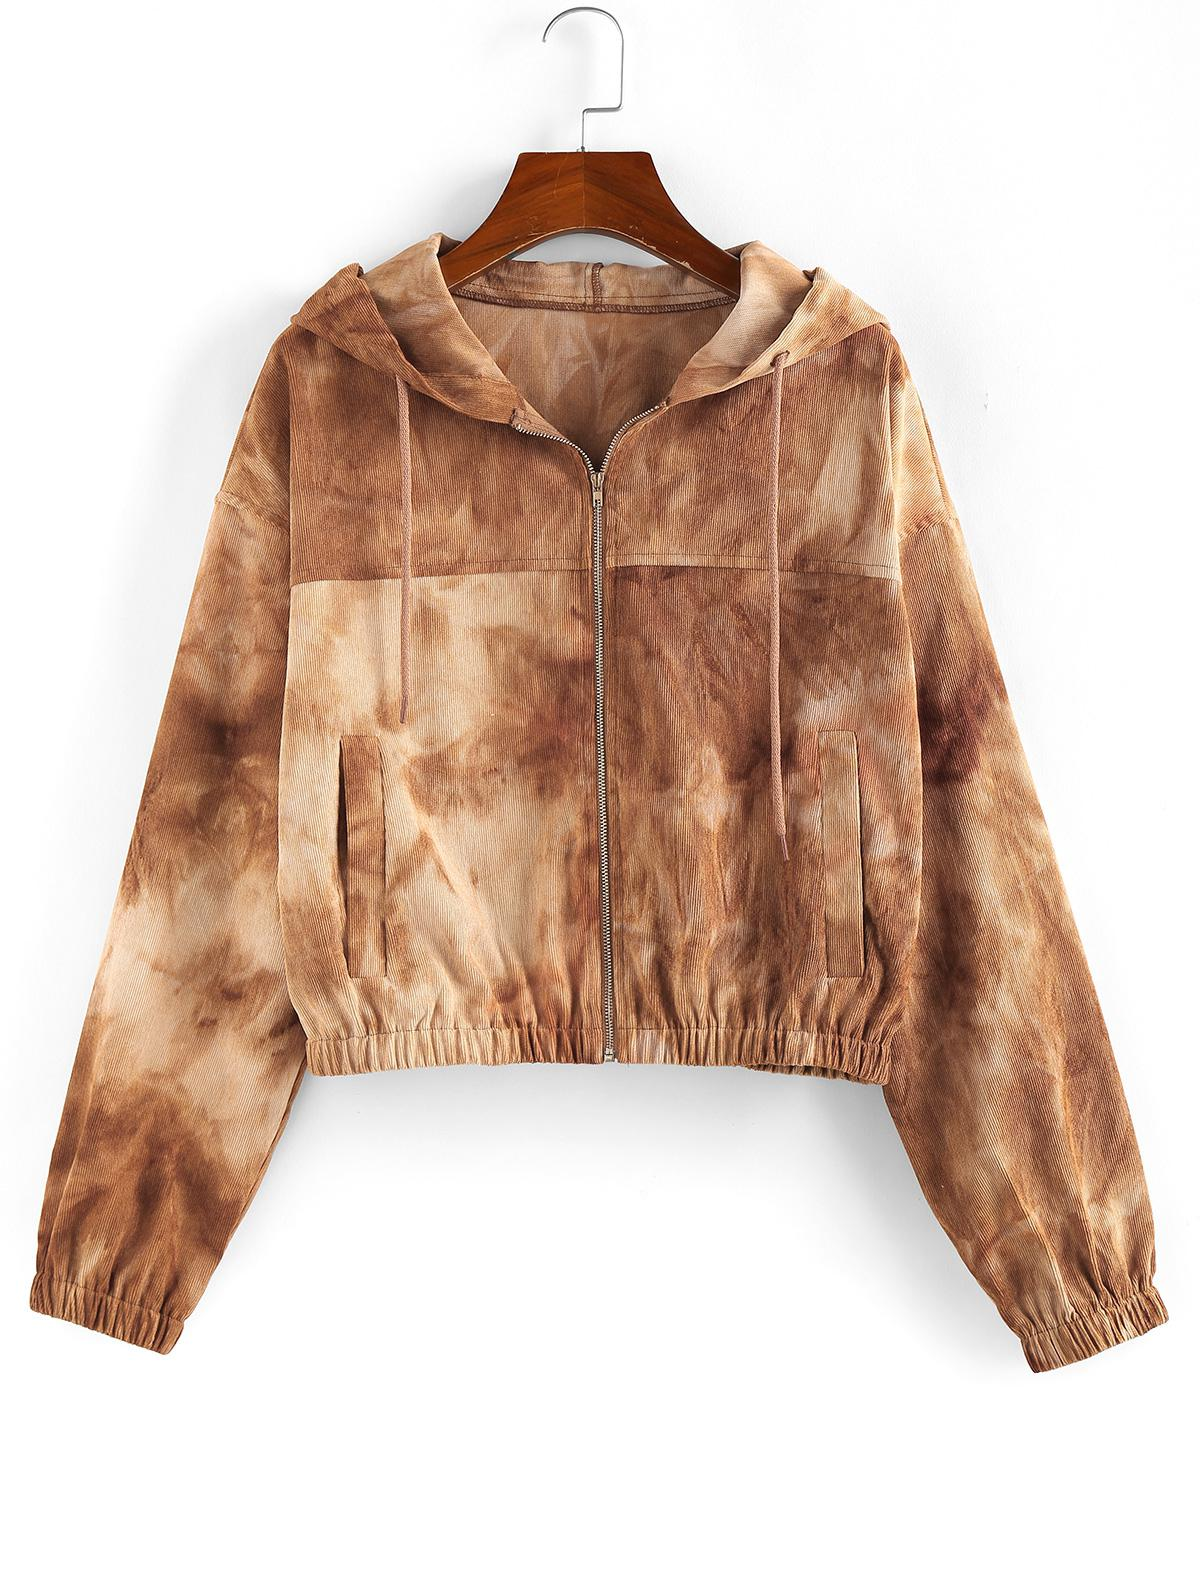 ZAFUL Tie Dye Drop Shoulder Hooded Jacket